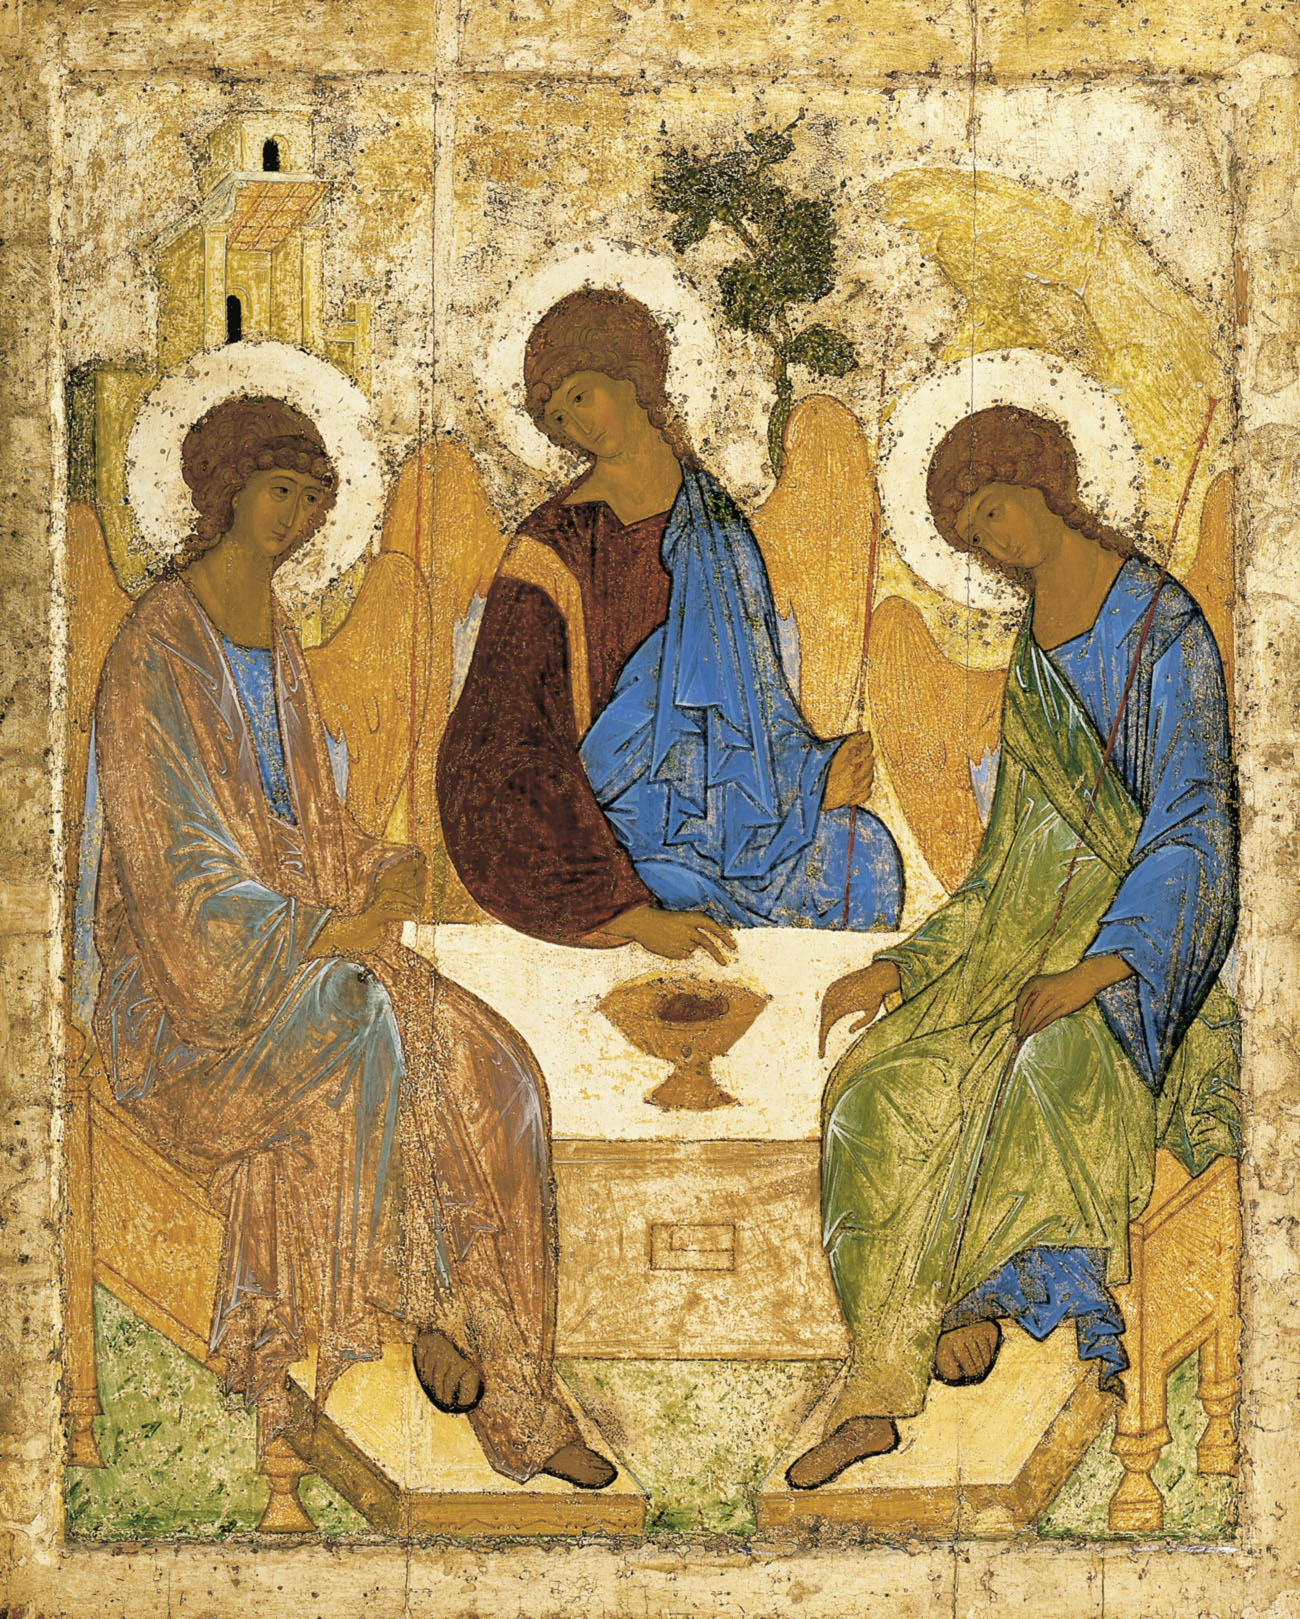 The Trinity (Russian: Троица, tr. Troitsa, also called The Hospitality of Abraham) is an icon created by a Russian painter Andrei Rublev in the 15th century.